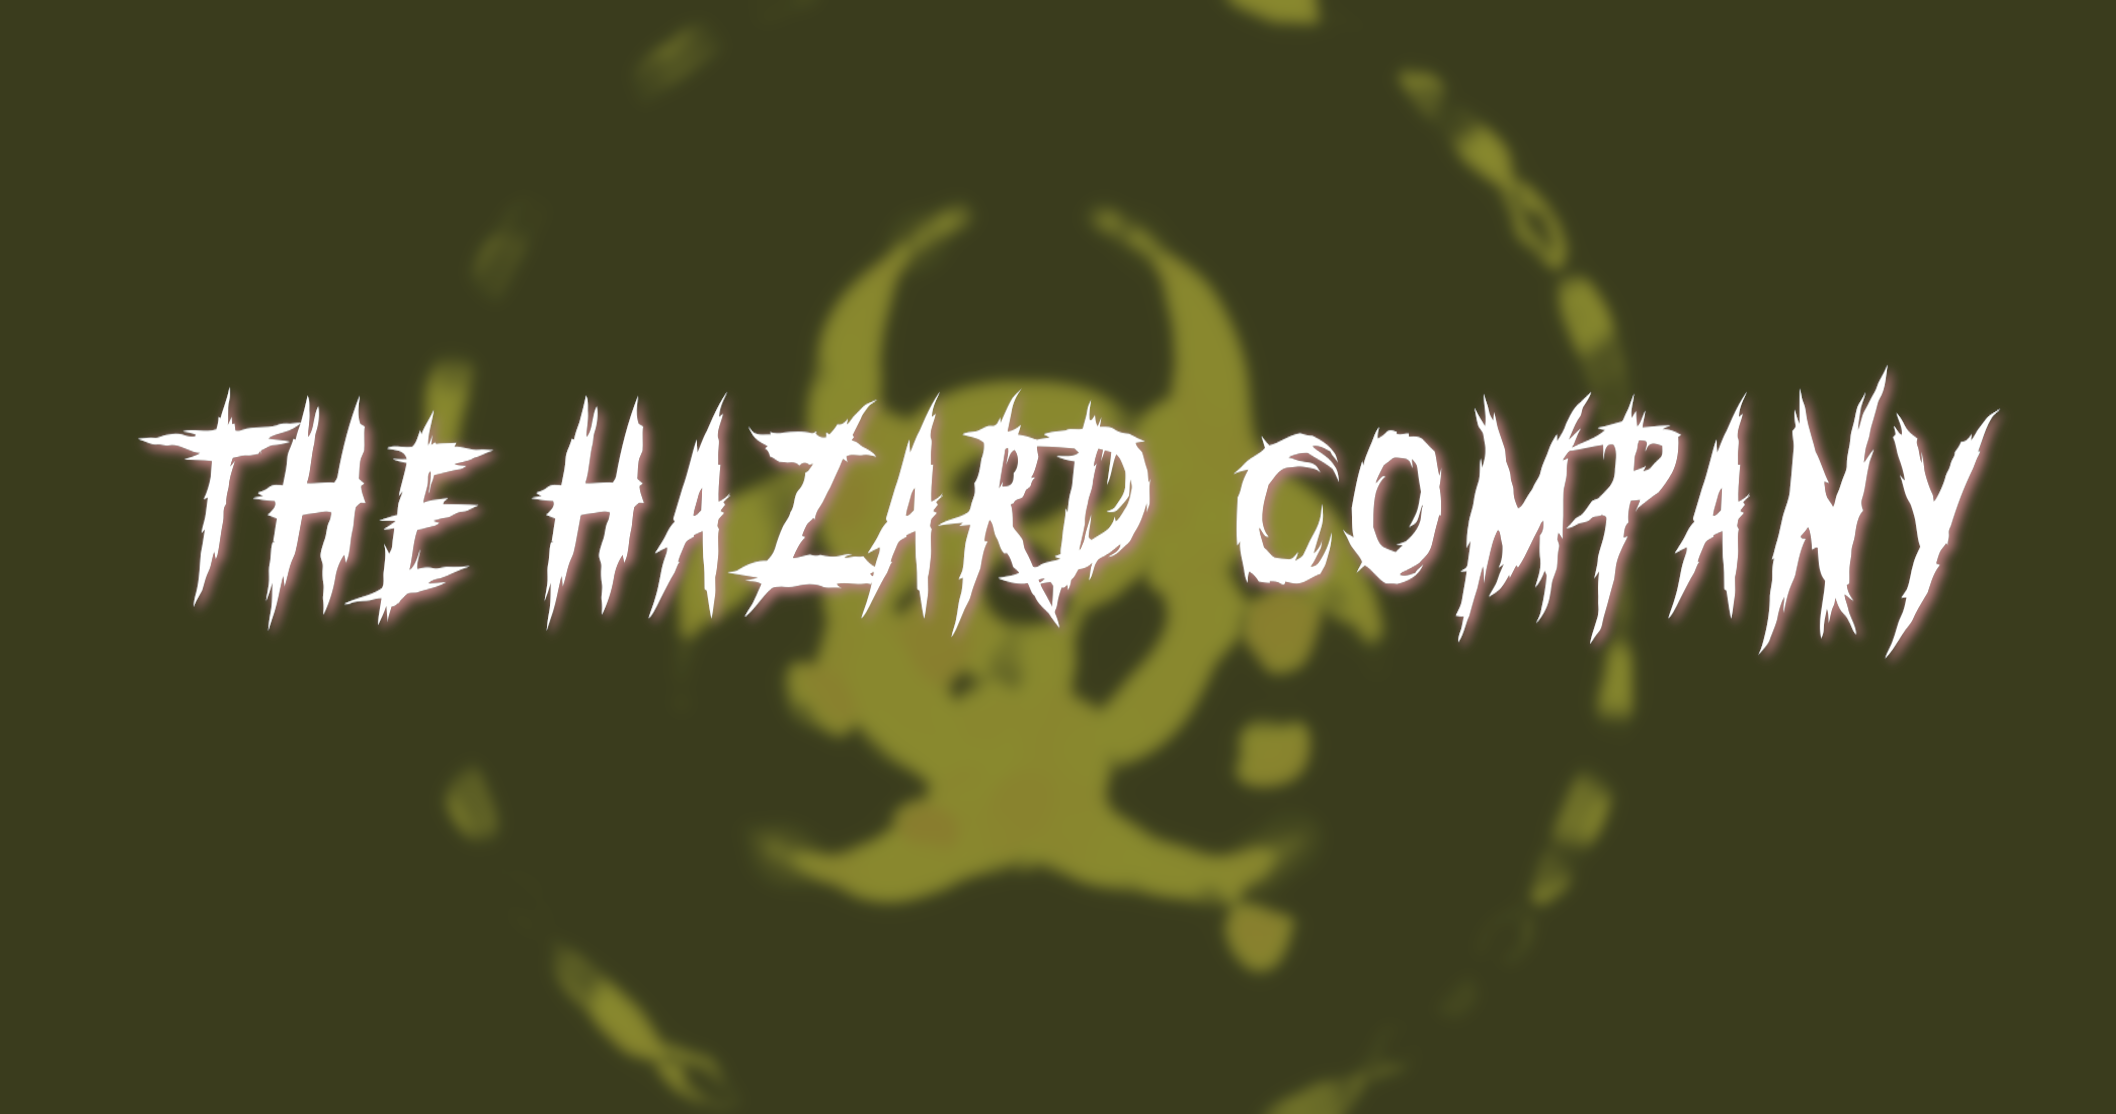 The Hazard Company